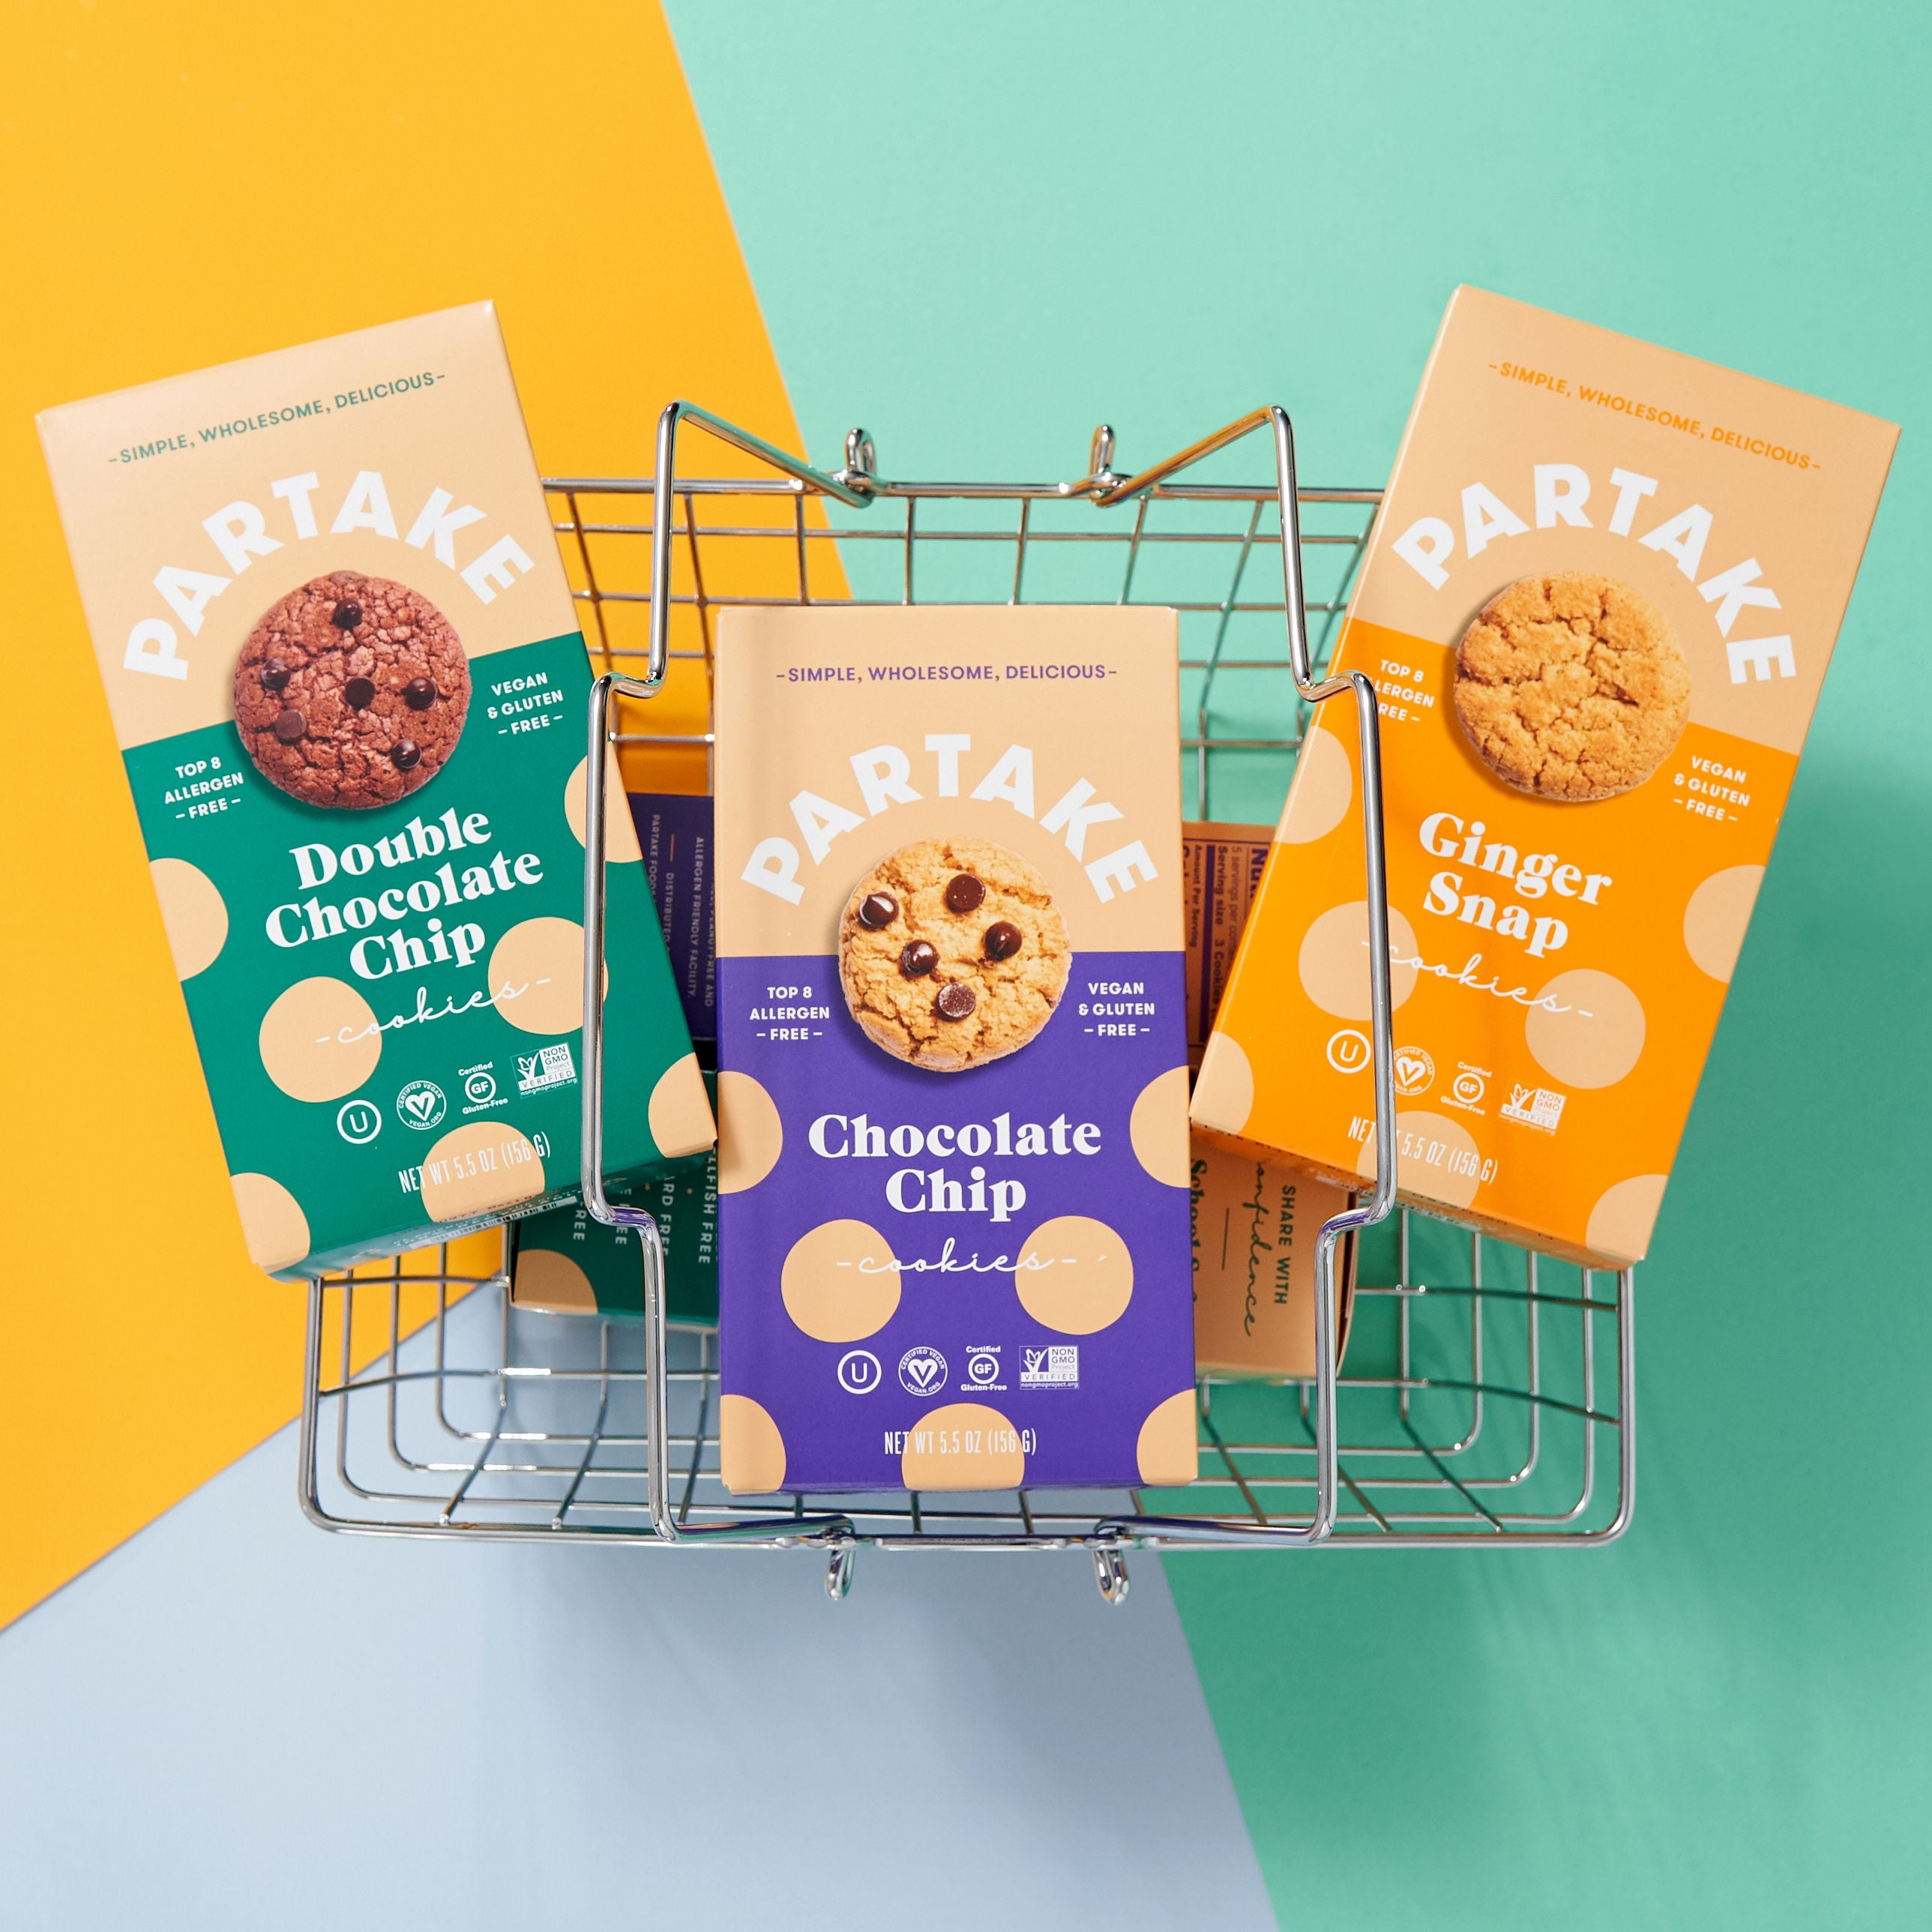 A trio of Partake Foods cookie boxes in the flavors of Double Chocolate Chip, Chocolate Chip, and Ginger Snap backdropped by a metal grocery basket.